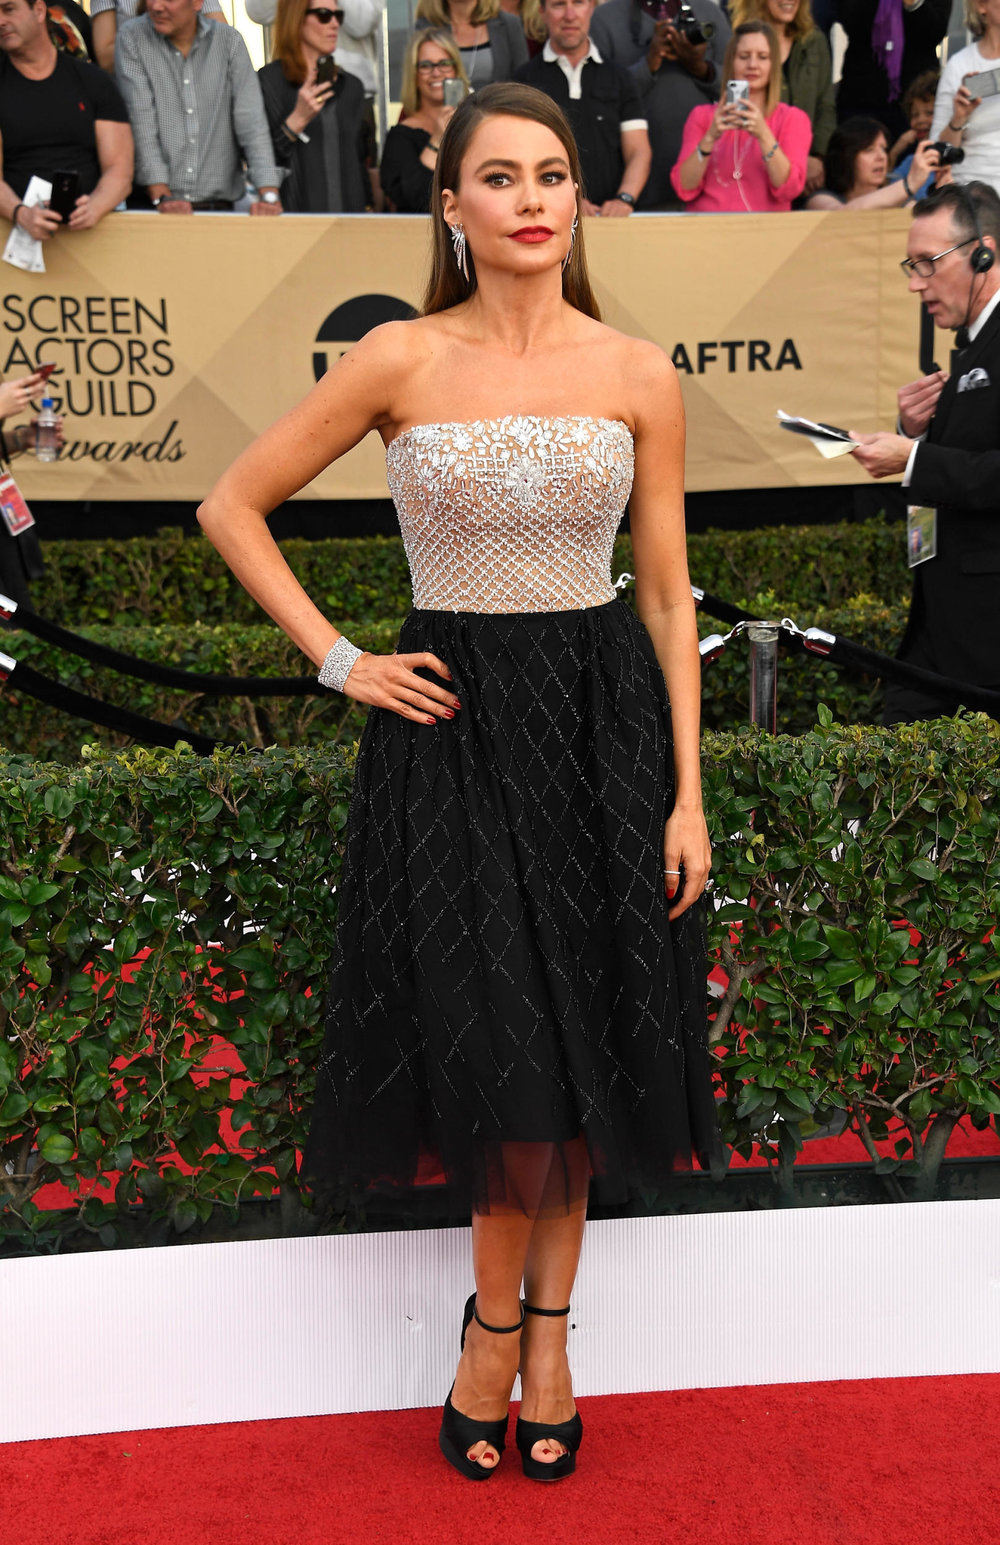 Sofia Vergara in Zuhair Murad at the 2017 SAG Awards Photo: Frazer Harrison/Getty Images